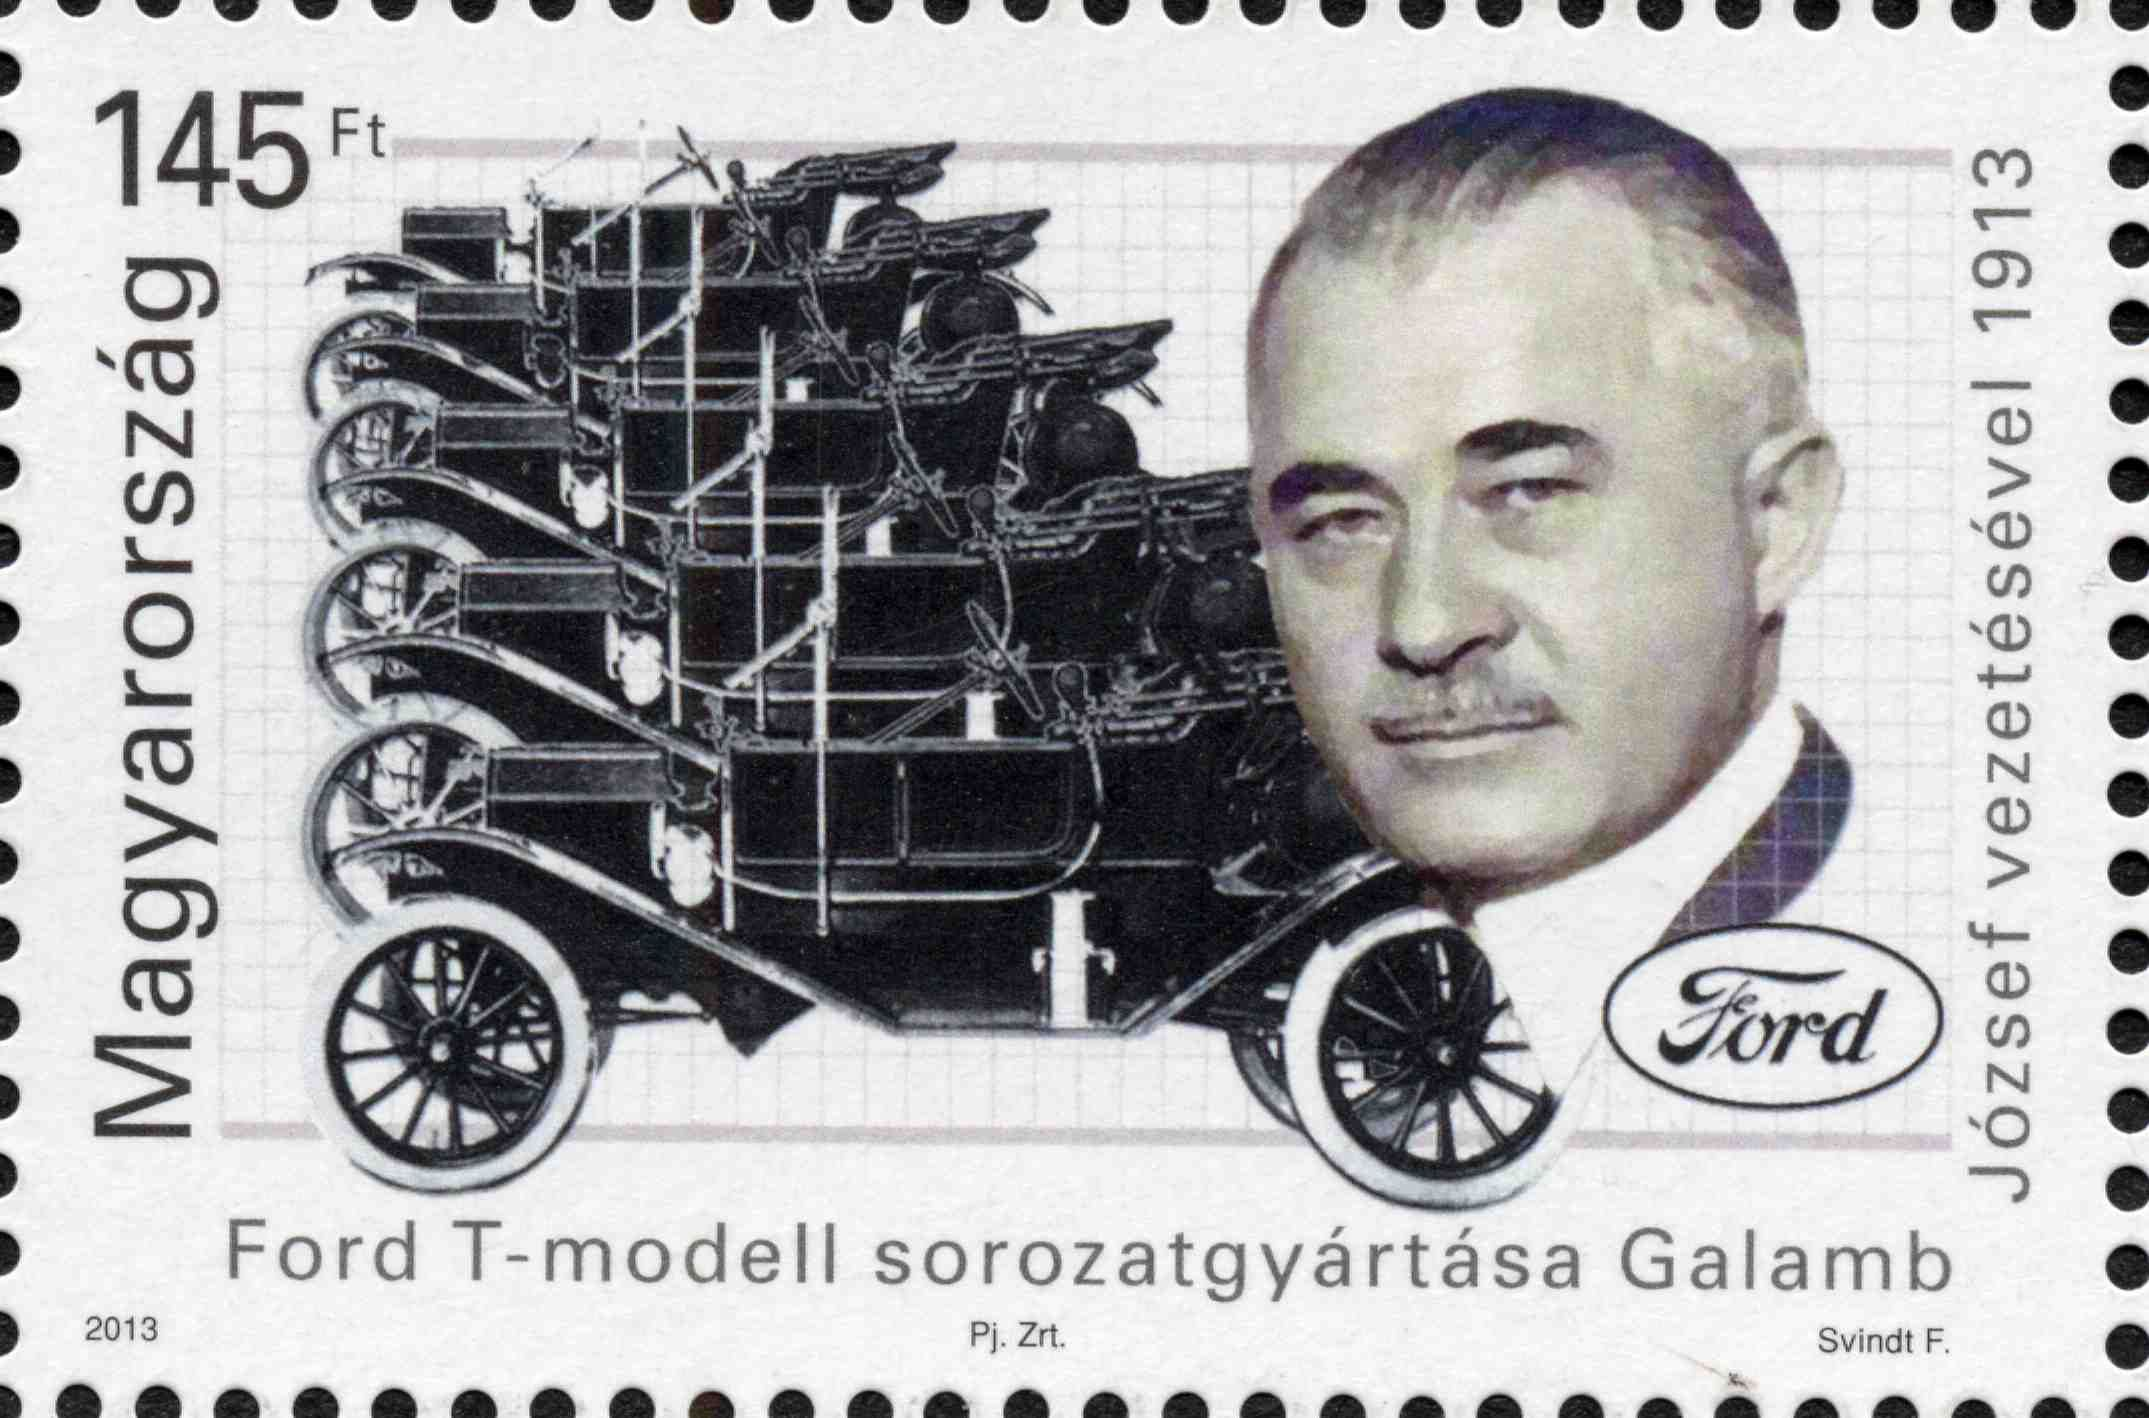 The Mass production of the model T Ford started 100 years ago under József Galamb